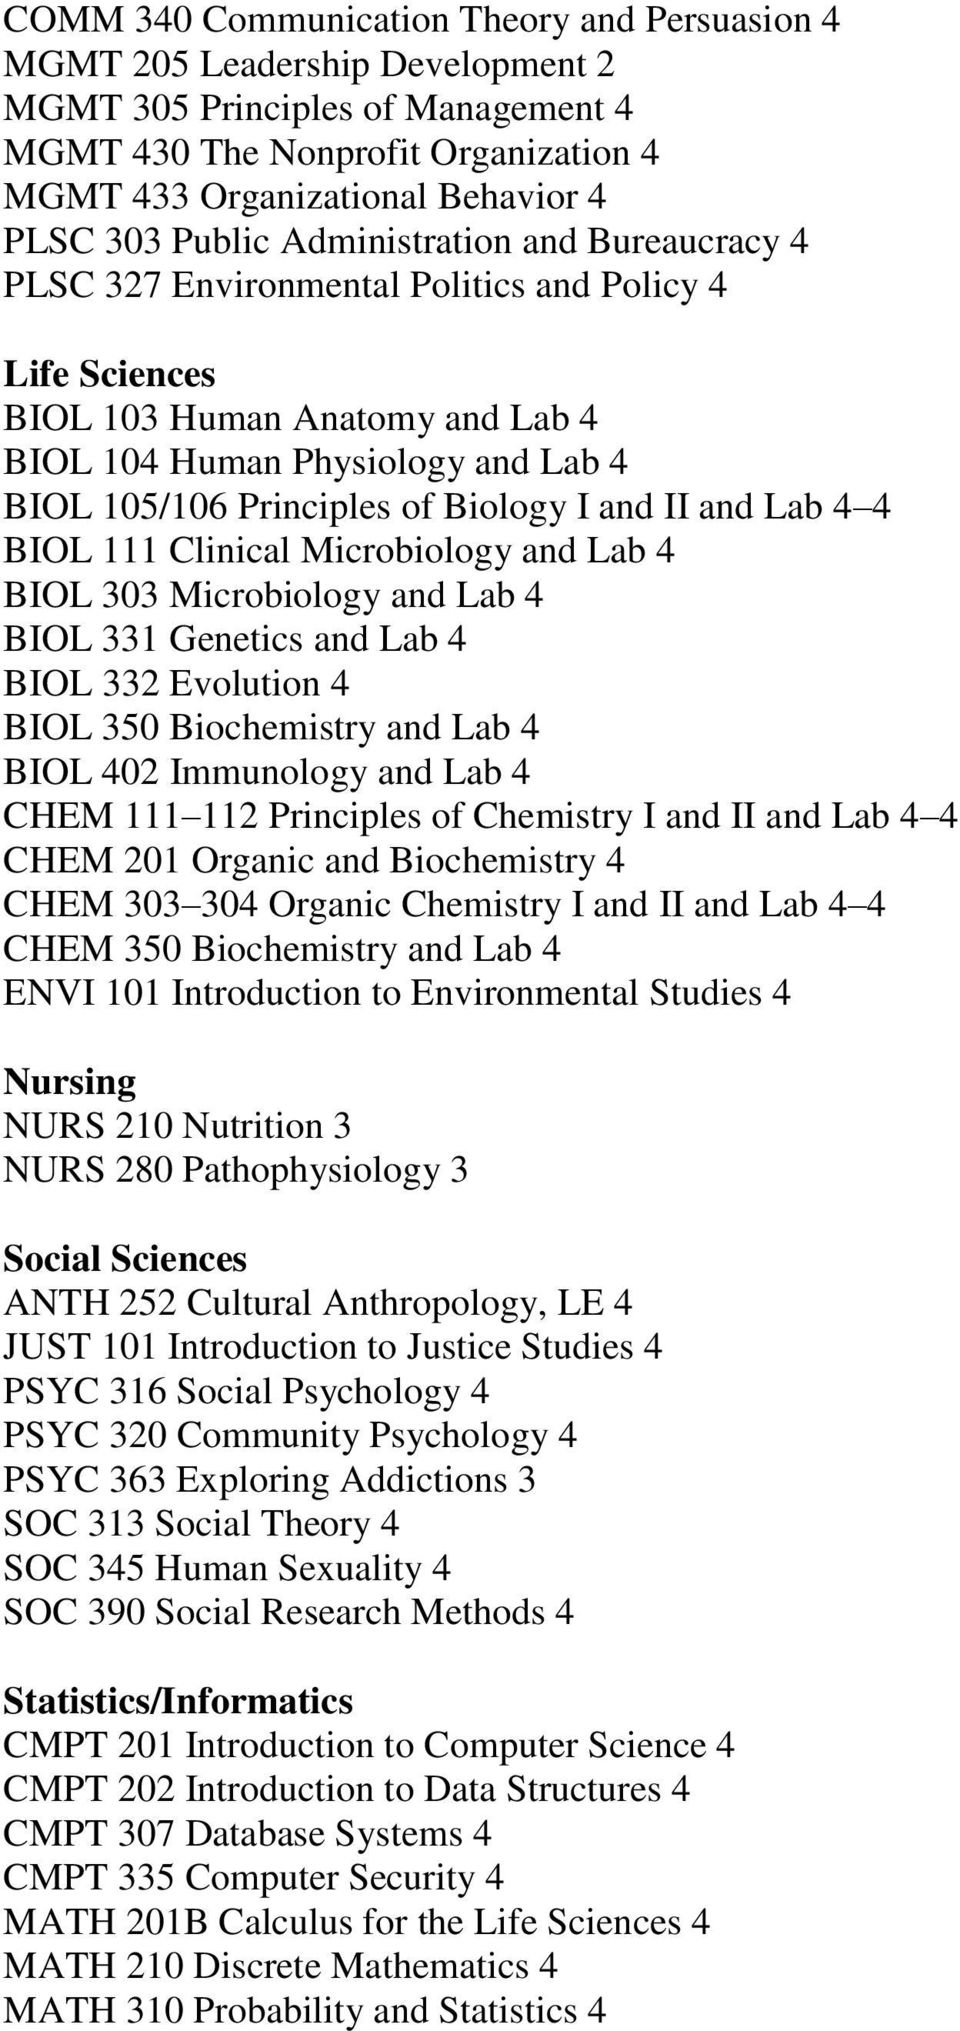 Biology I and II and Lab 4 4 BIOL 111 Clinical Microbiology and Lab 4 BIOL 303 Microbiology and Lab 4 BIOL 331 Genetics and Lab 4 BIOL 332 Evolution 4 BIOL 350 Biochemistry and Lab 4 BIOL 402